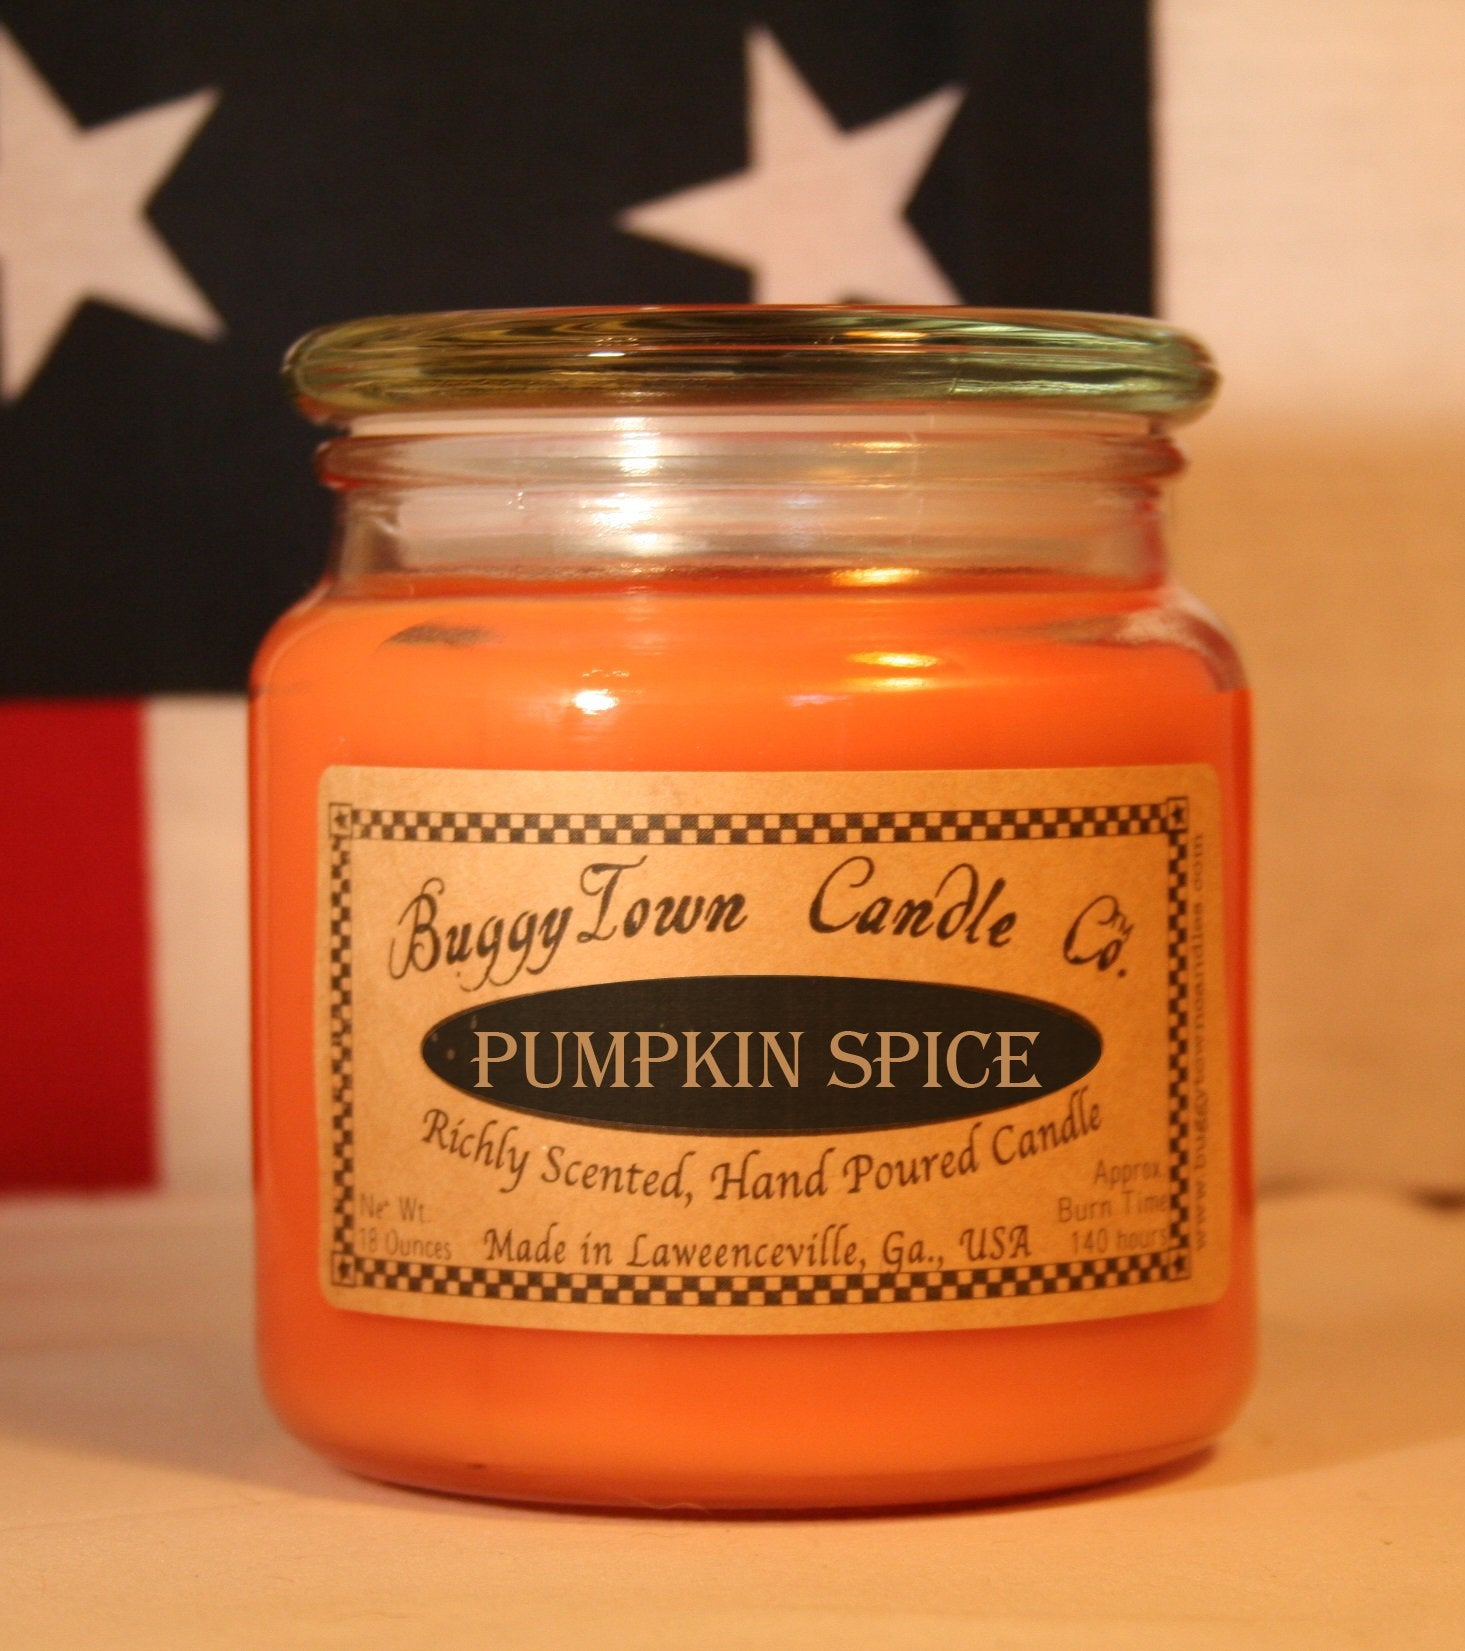 Pumpkin Spice Candles